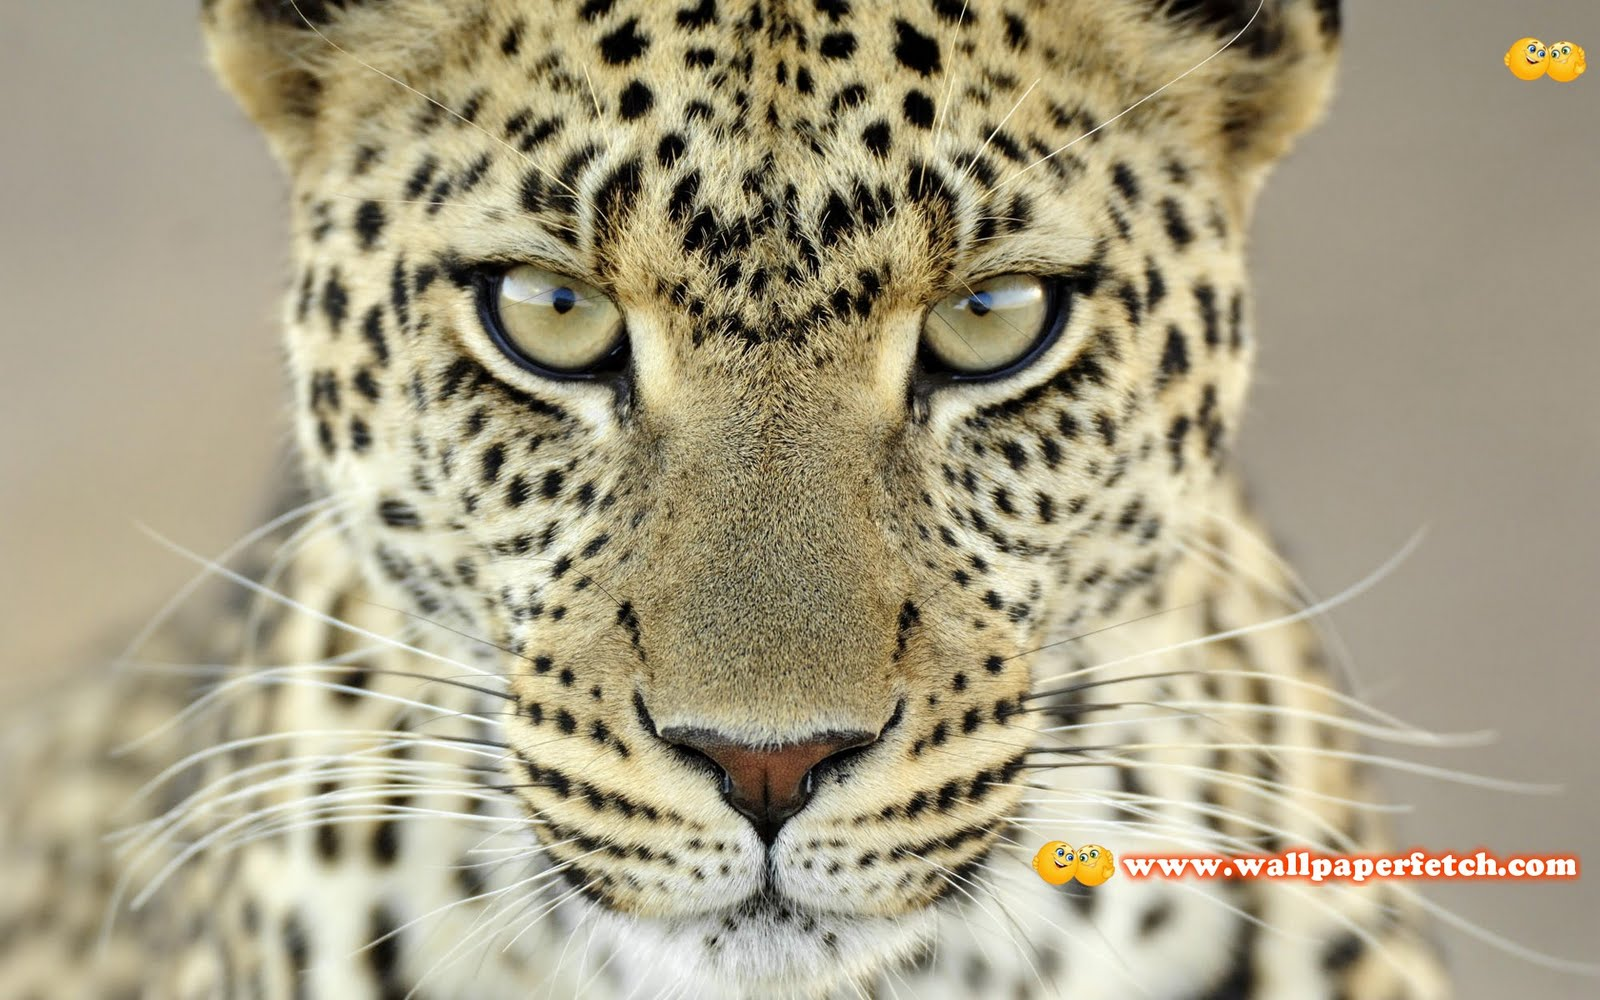 Wallpaper Fetch: Beautiful Animals HD Wallpapers Pack 1